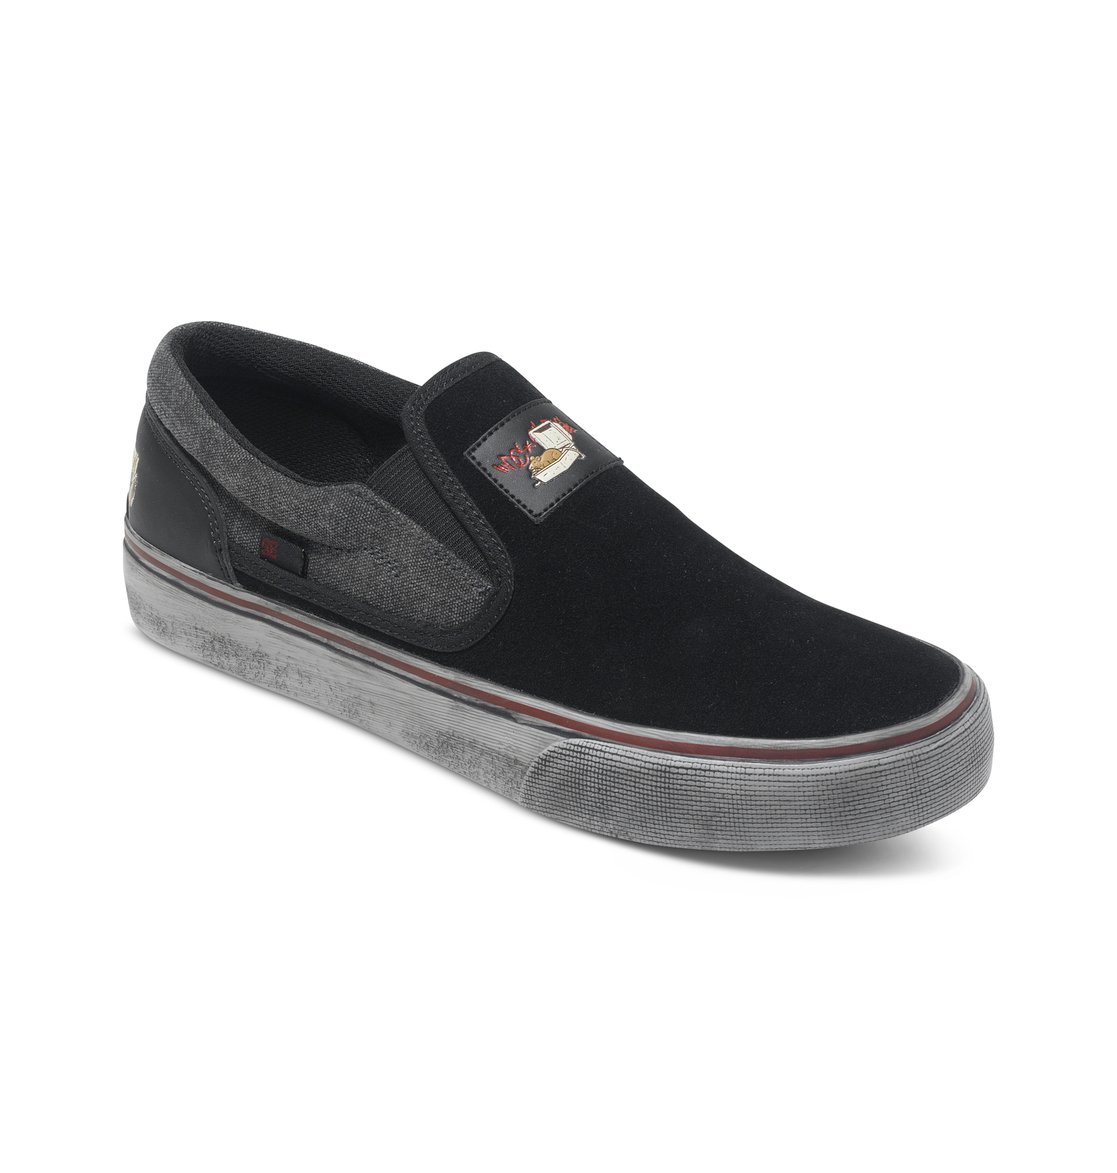 s trase s cliver slip on shoes adys300174 dc shoes